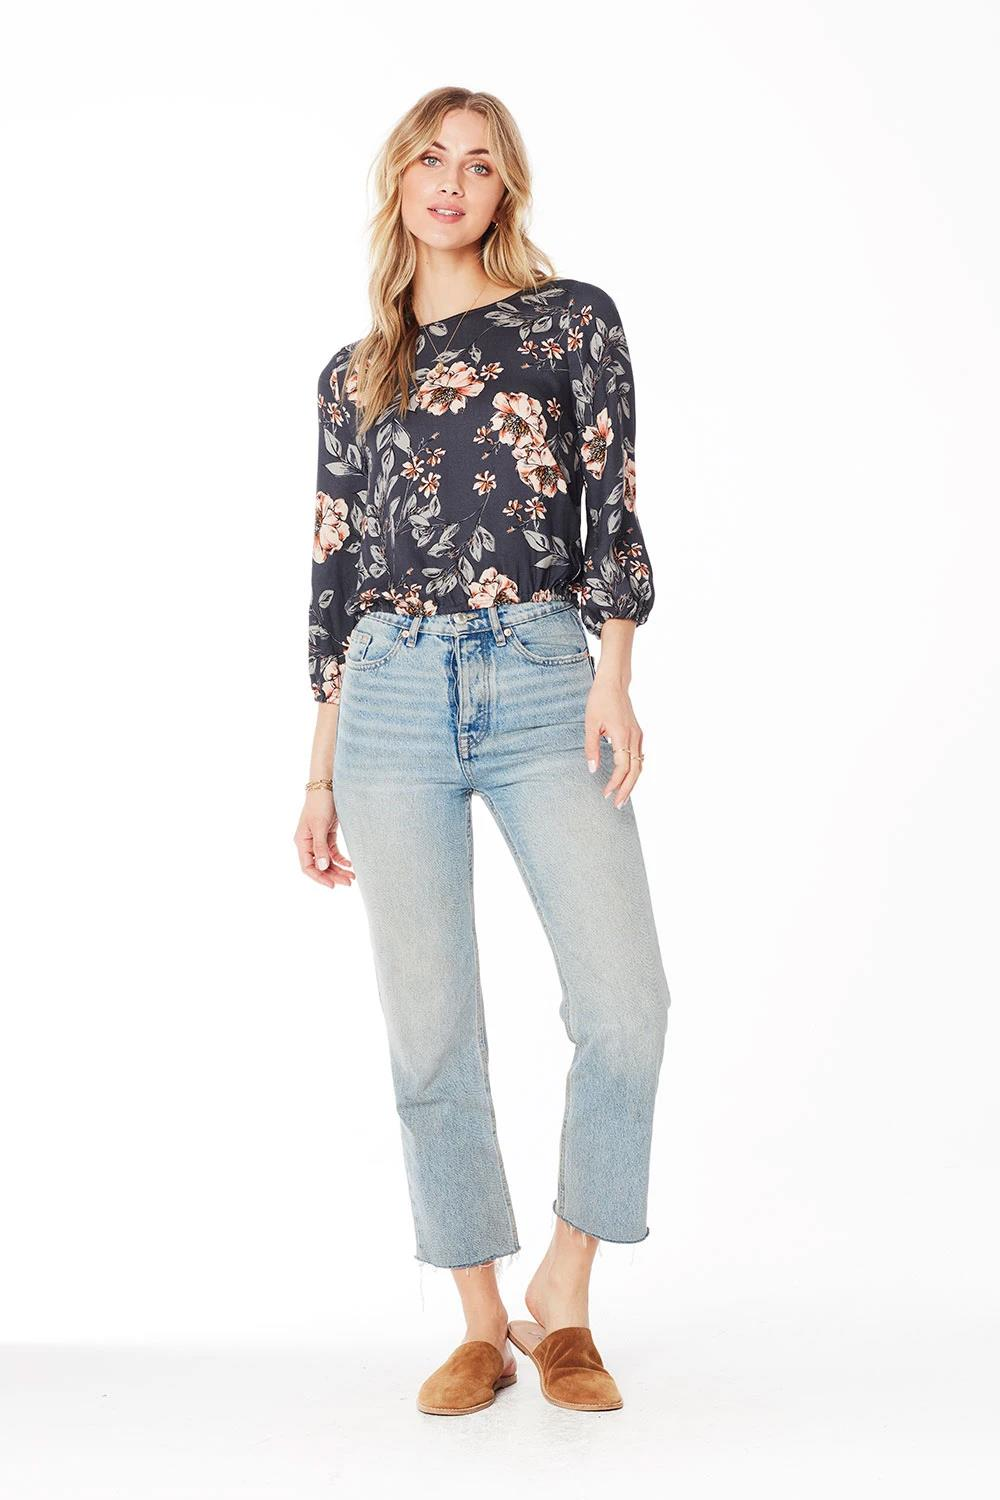 Saltwater Luxe, Becca Blouse, Garden Dream, Navy, S, Front View